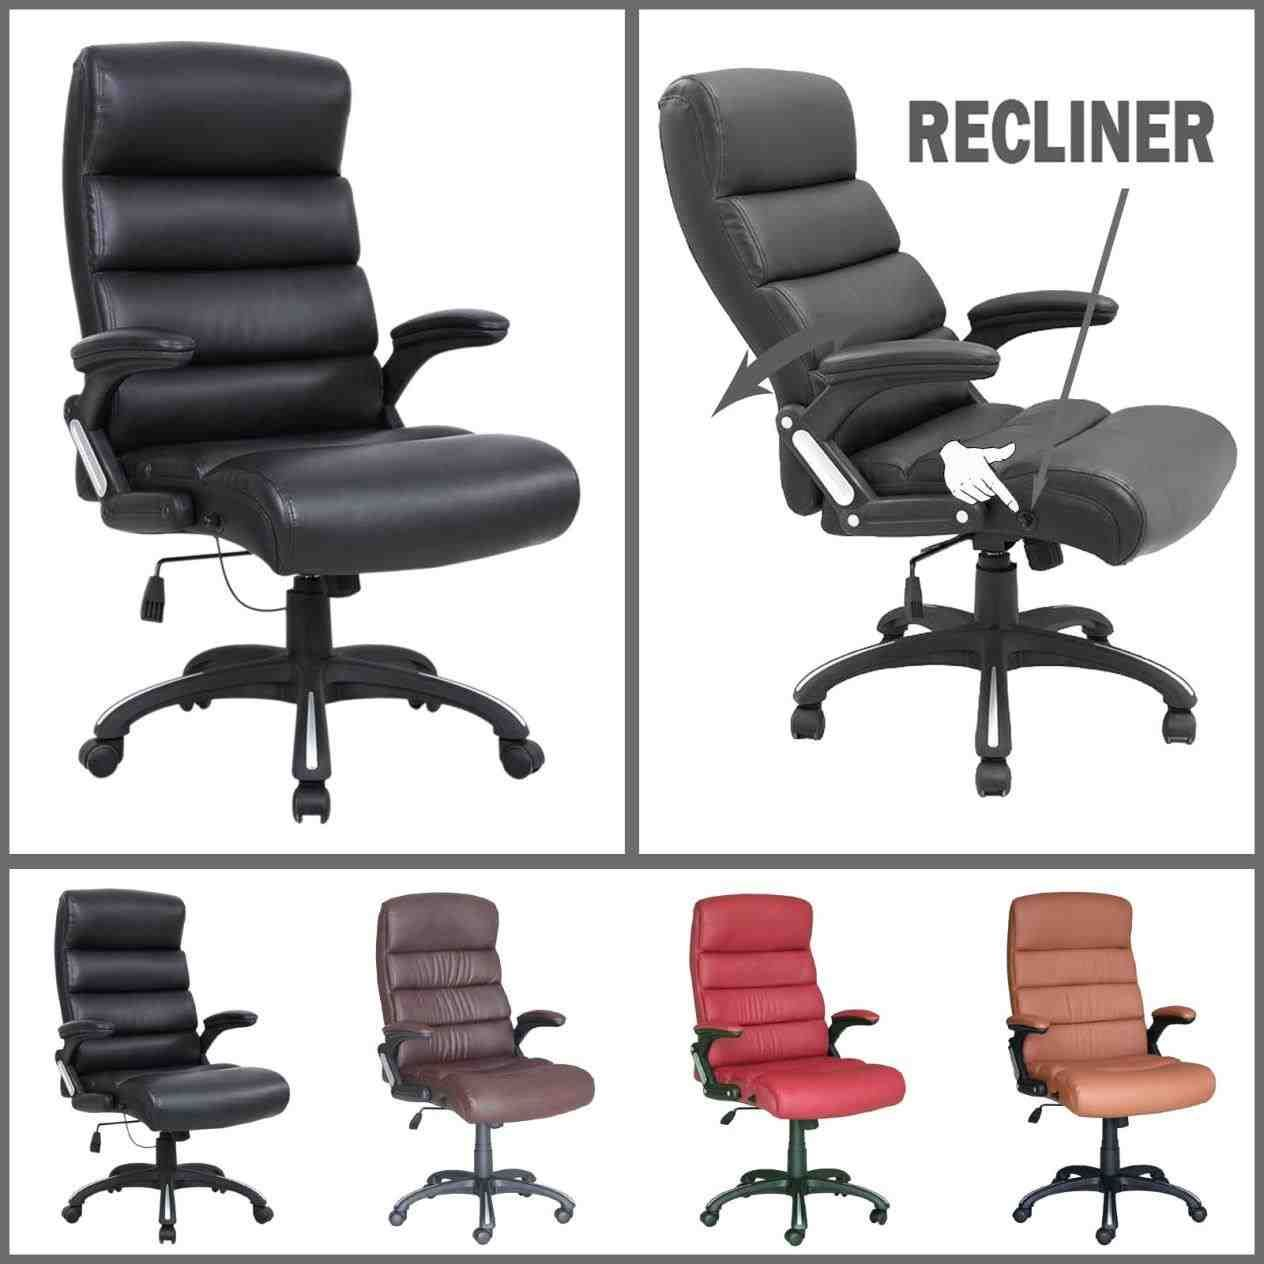 Wondrous Cheap Office Chairs South Africa Bungee Cord Chair Full Download Free Architecture Designs Licukmadebymaigaardcom